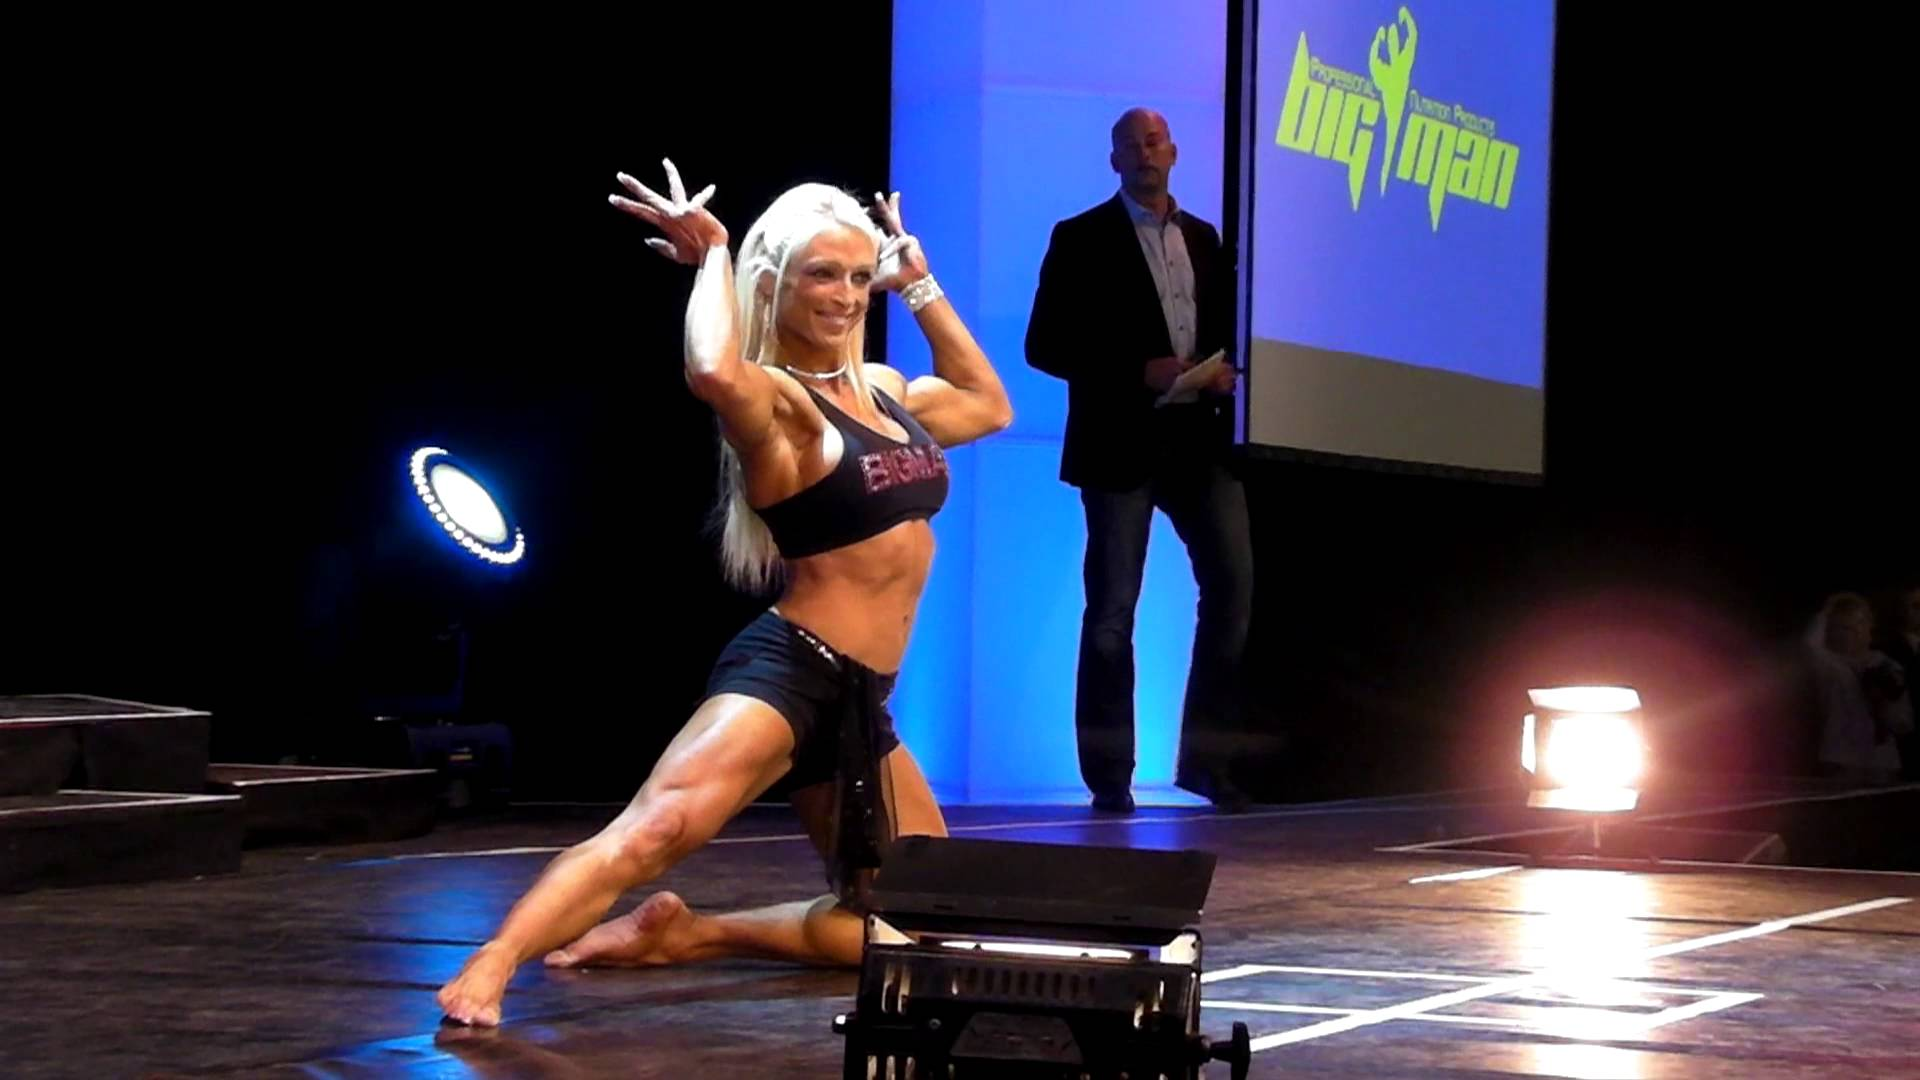 Lorena Inarra – FIBO Power 2012